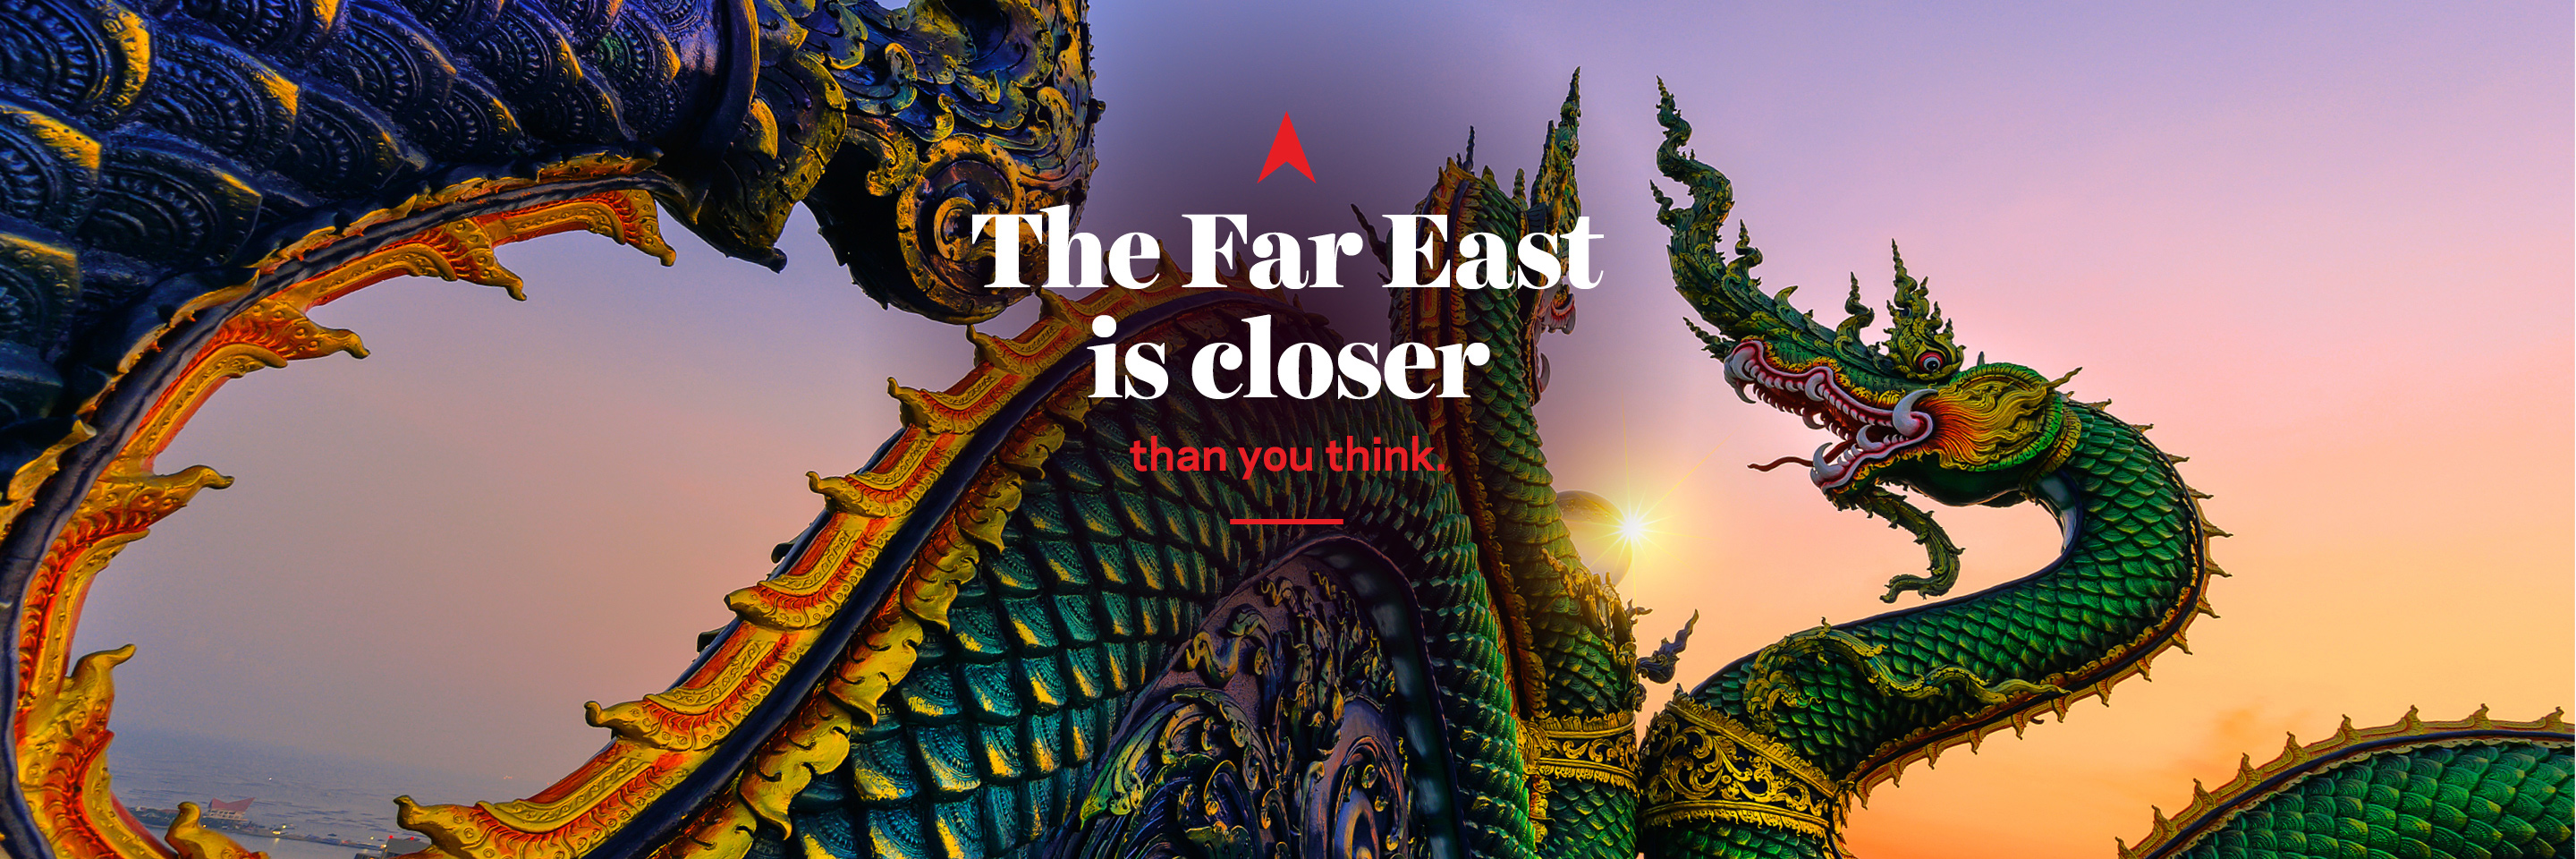 The Far East is closer than you think